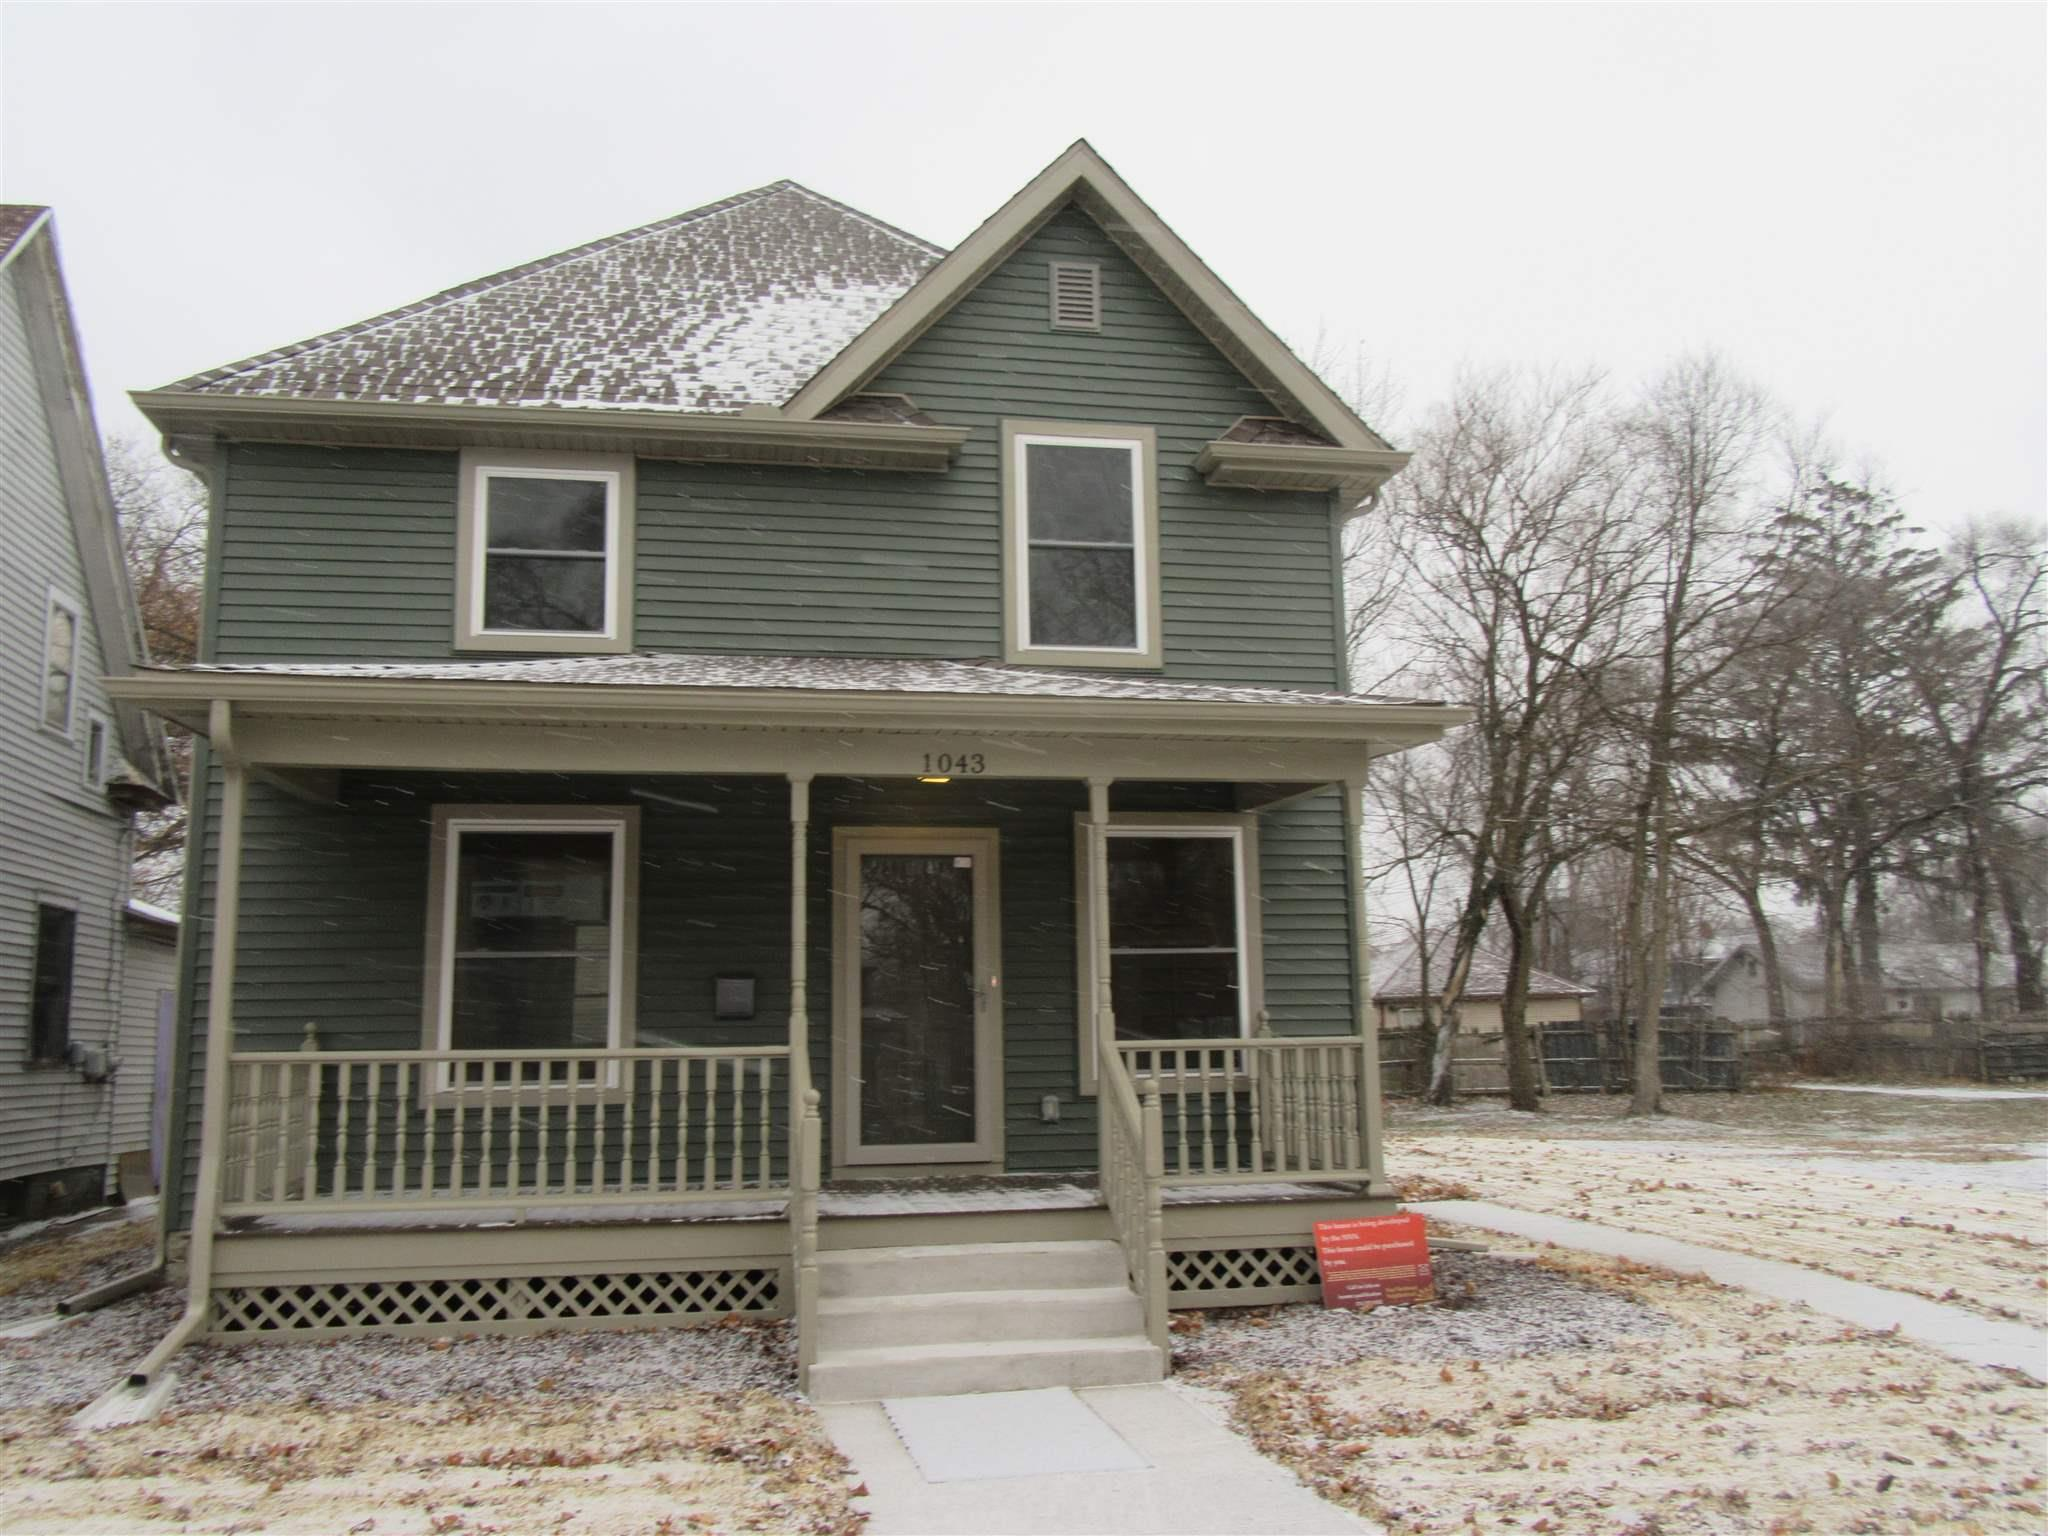 1043 California South Bend, IN 46616